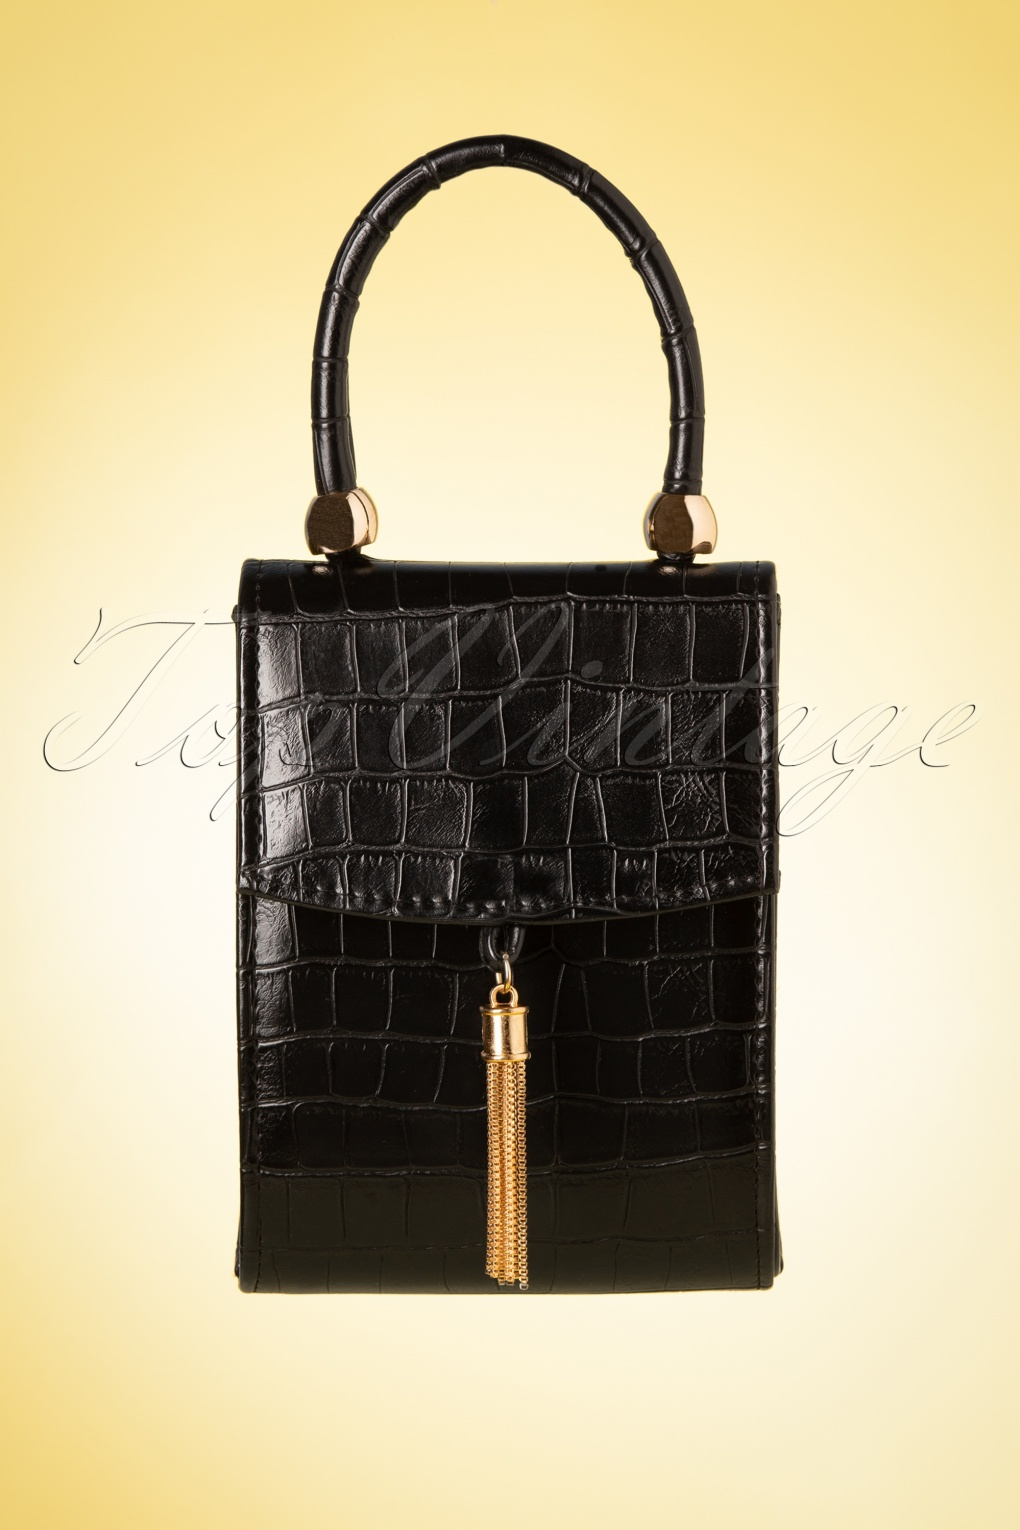 1950s Handbags, Purses, and Evening Bag Styles 50s Croco Love Evening Bag in Black �26.89 AT vintagedancer.com